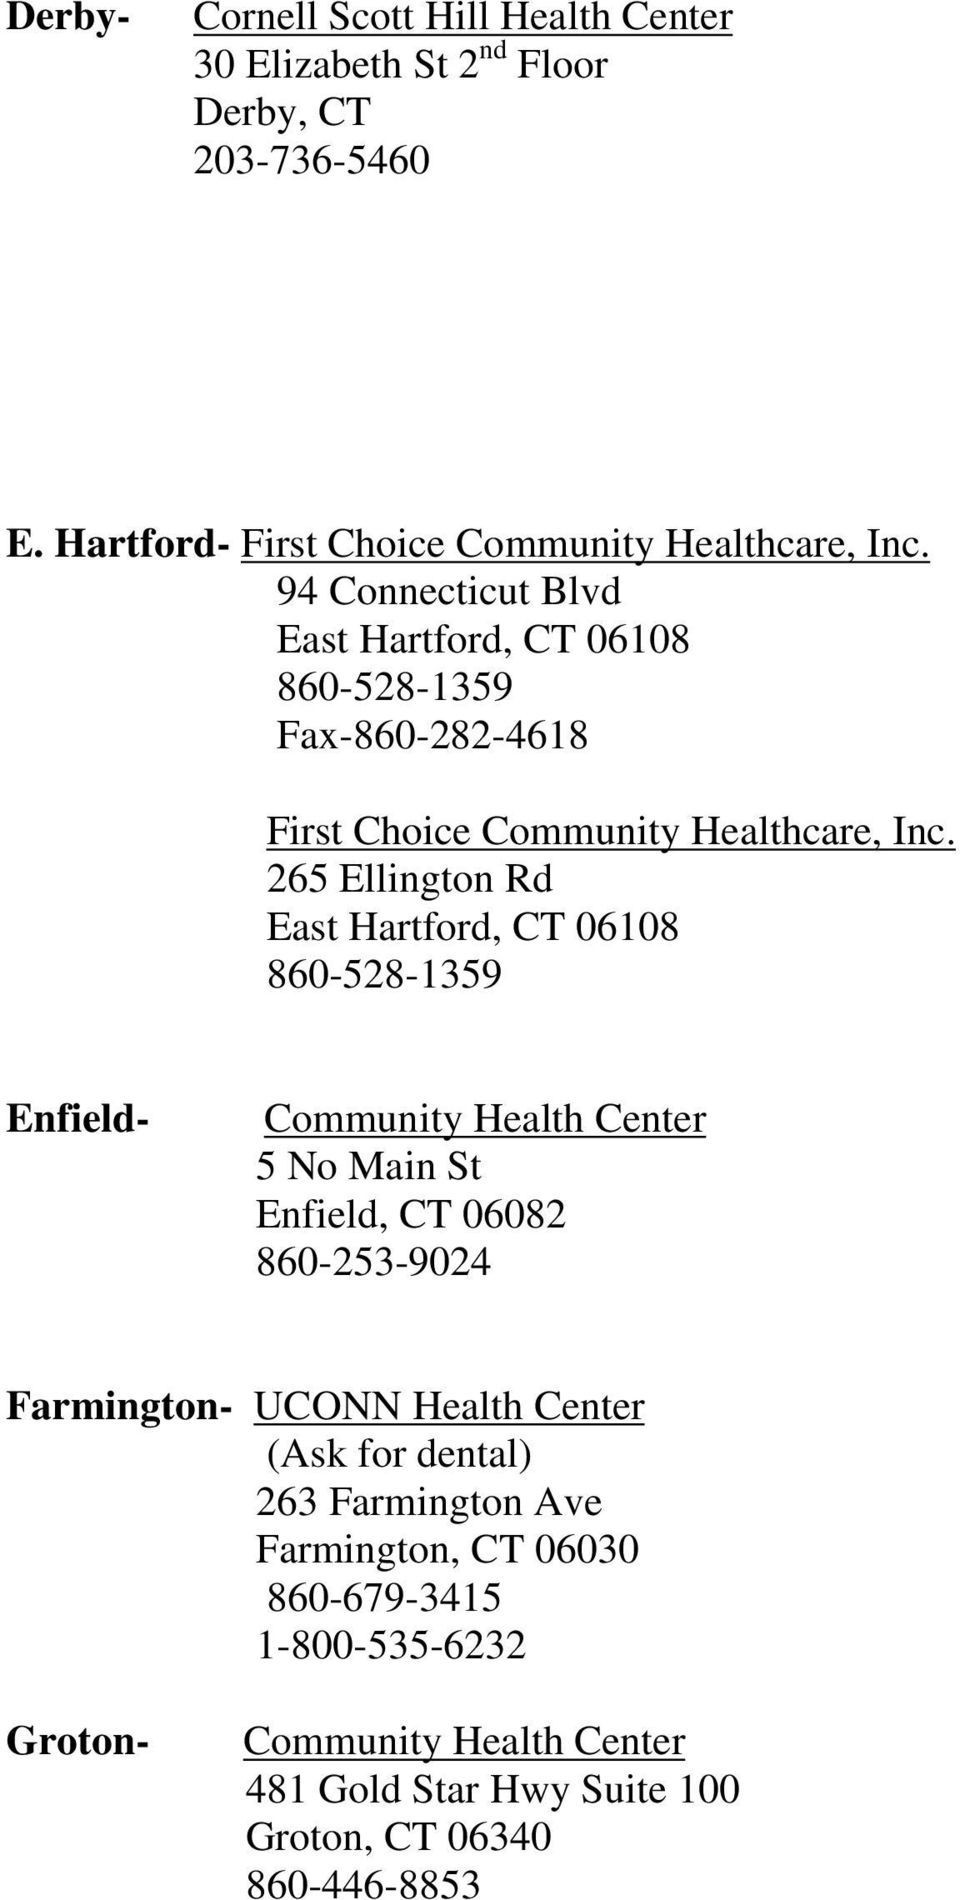 265 Ellington Rd East Hartford, CT 06108 860-528-1359 Enfield- Community Health Center 5 No Main St Enfield, CT 06082 860-253-9024 Farmington- UCONN